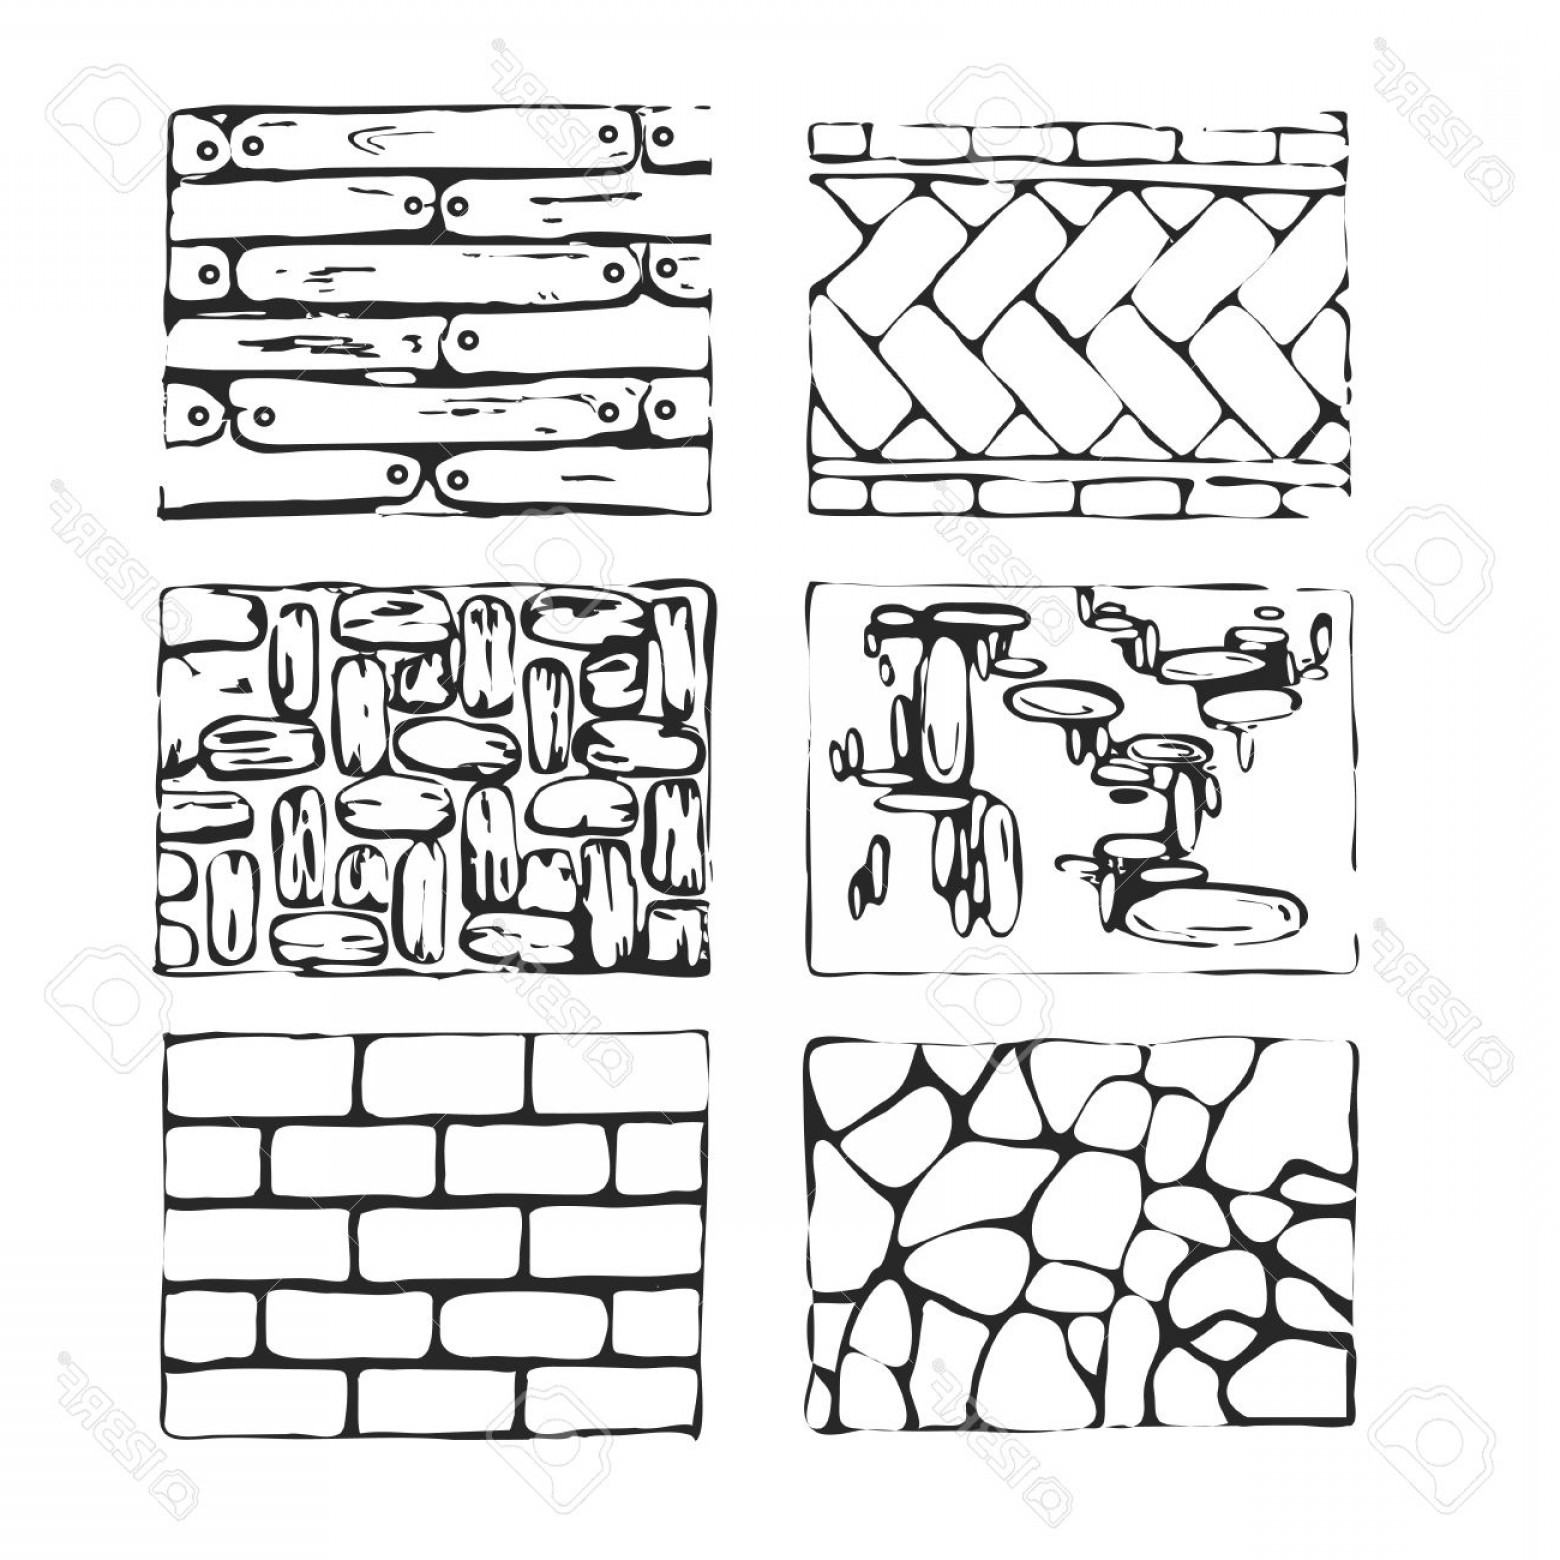 Vector Stone Landscaping: Photostock Vector Hand Drawn Paving Stones And Blocks Detailed Landscape Design Elements Top View Eight Type Of Paving